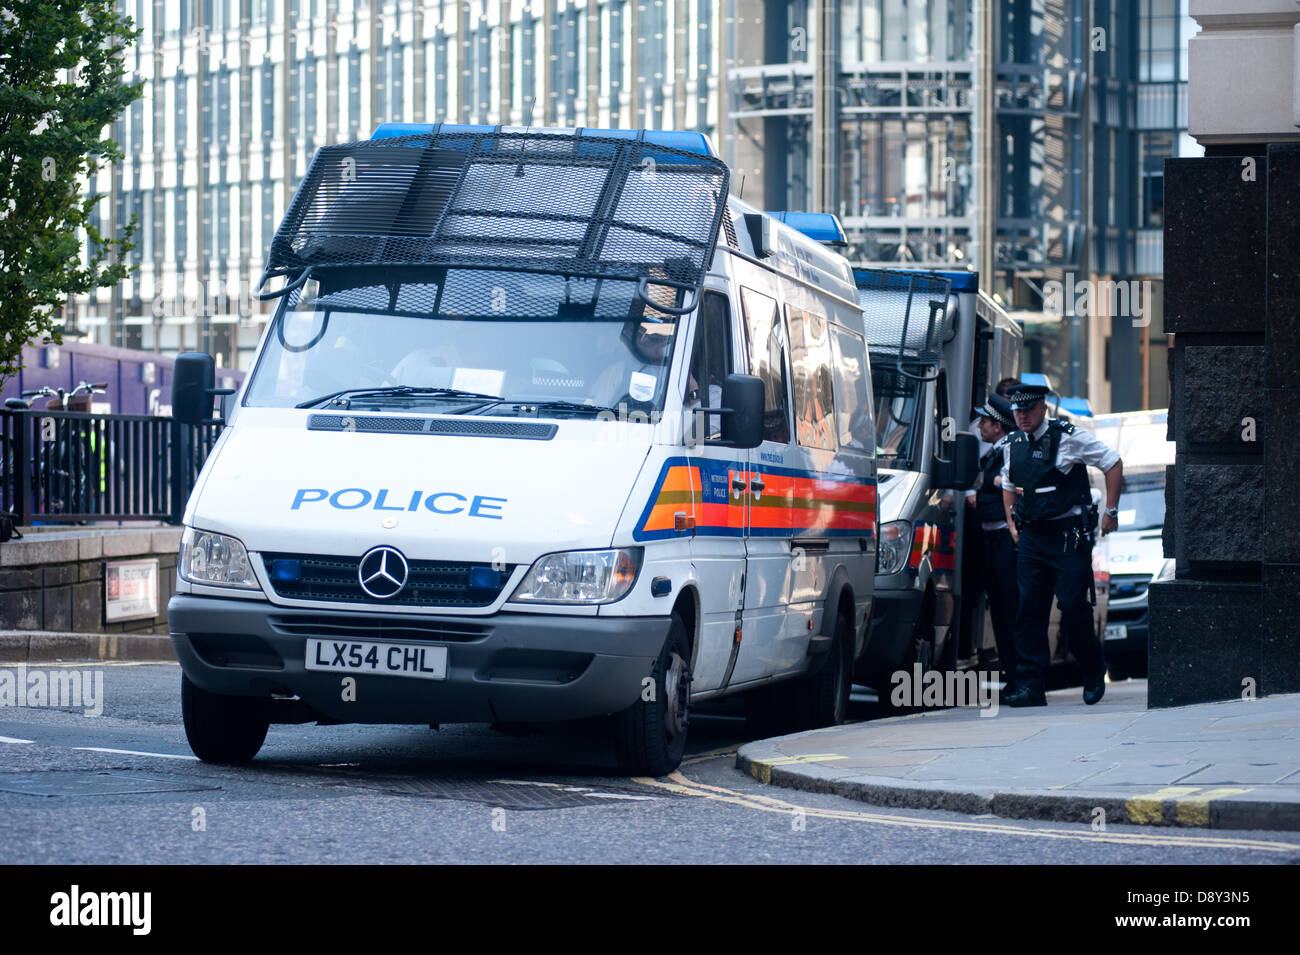 London, UK. 6th June 2013. Police gather at the Old Bailey on the day of the sentencing of six men pleaded guilty - Stock Image